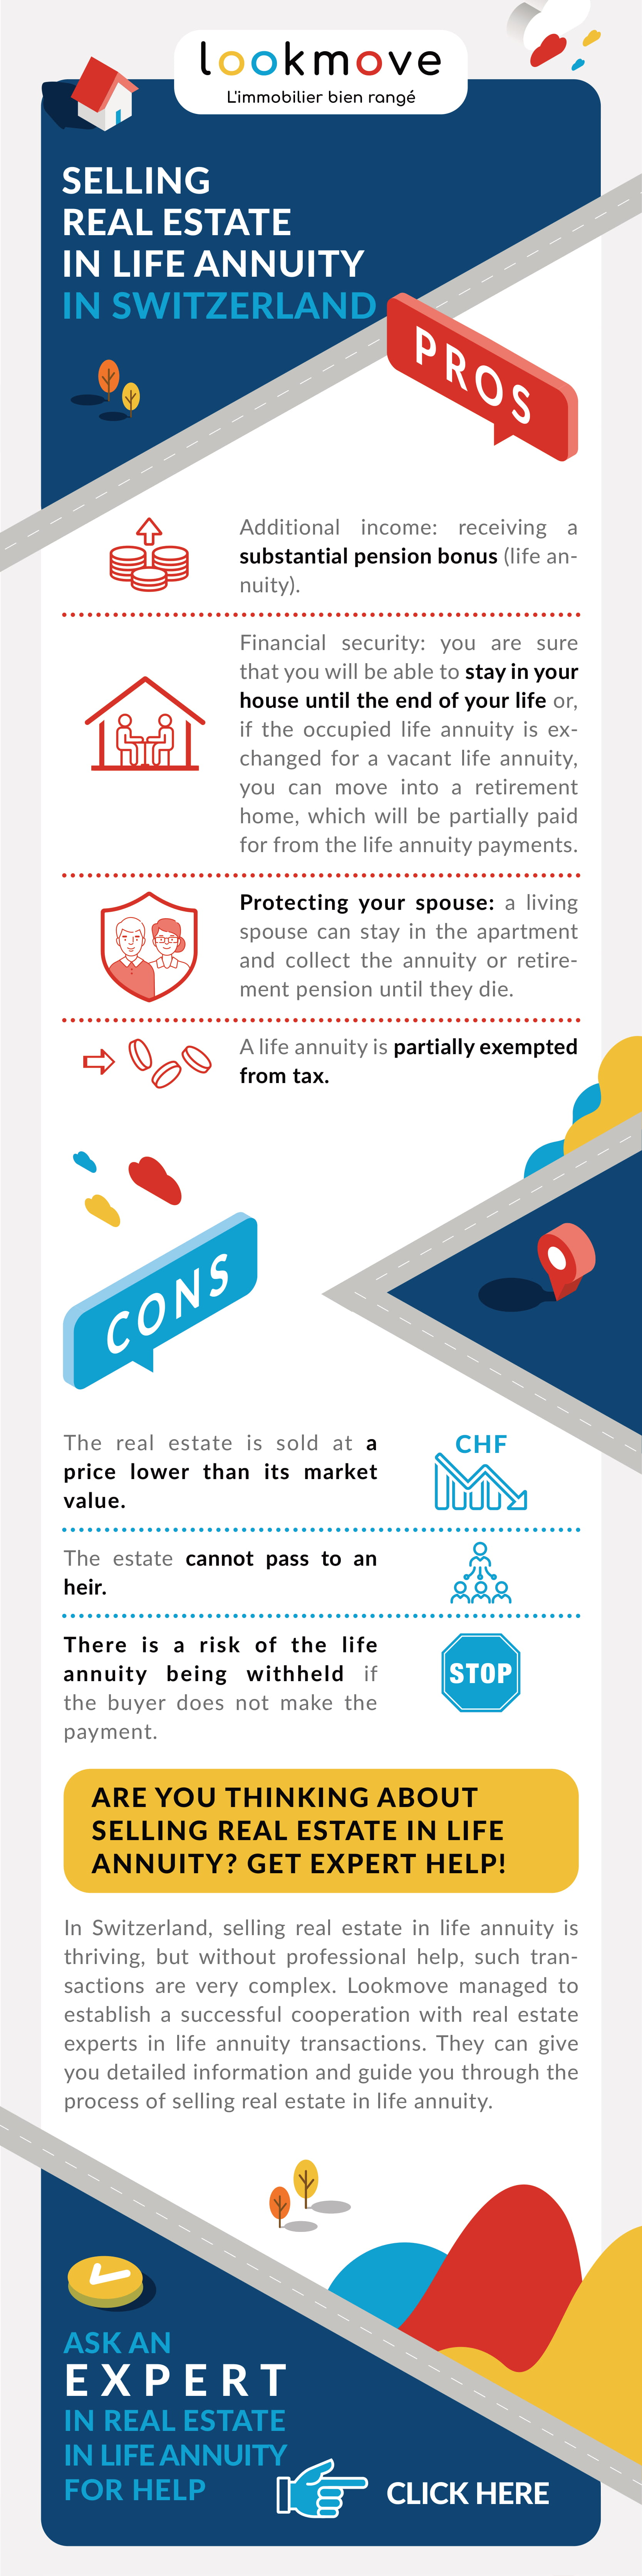 Selling real estate in life annuity in Switzerland